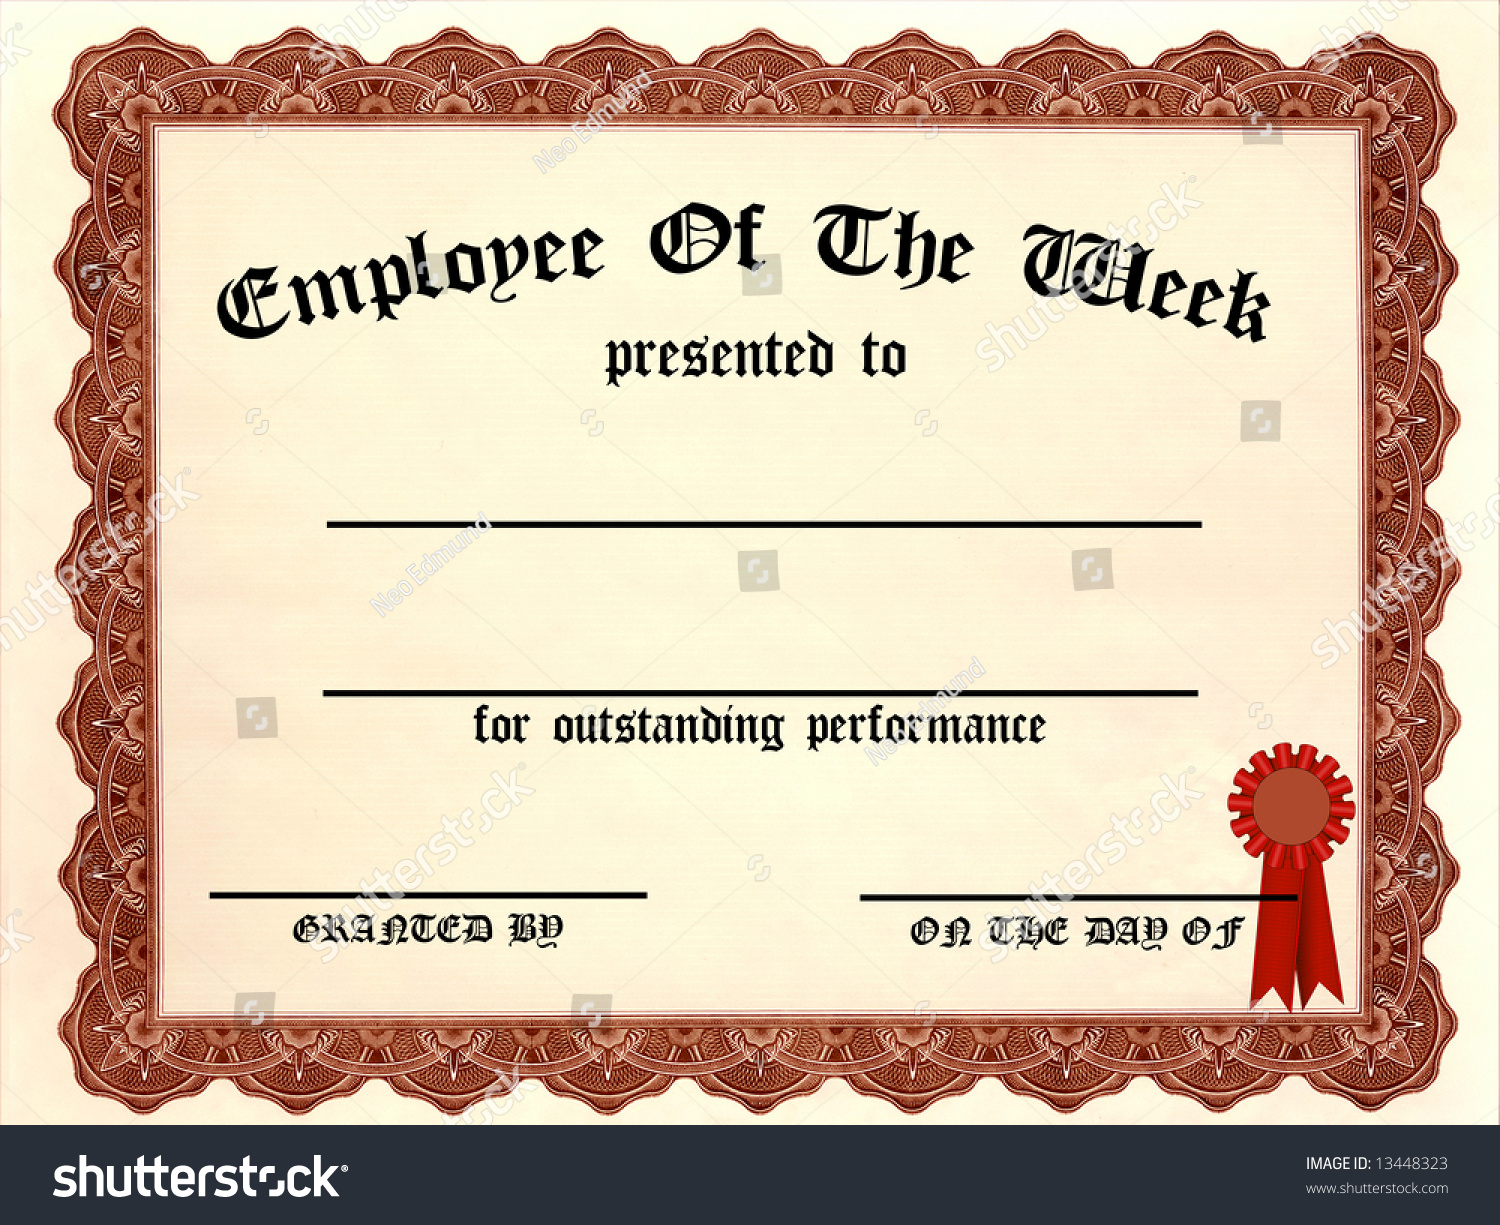 Employee of the month certificate template free free student of the employee of the month certificate template free free student of the month certificate templates pasoevolistco 24 yelopaper Choice Image